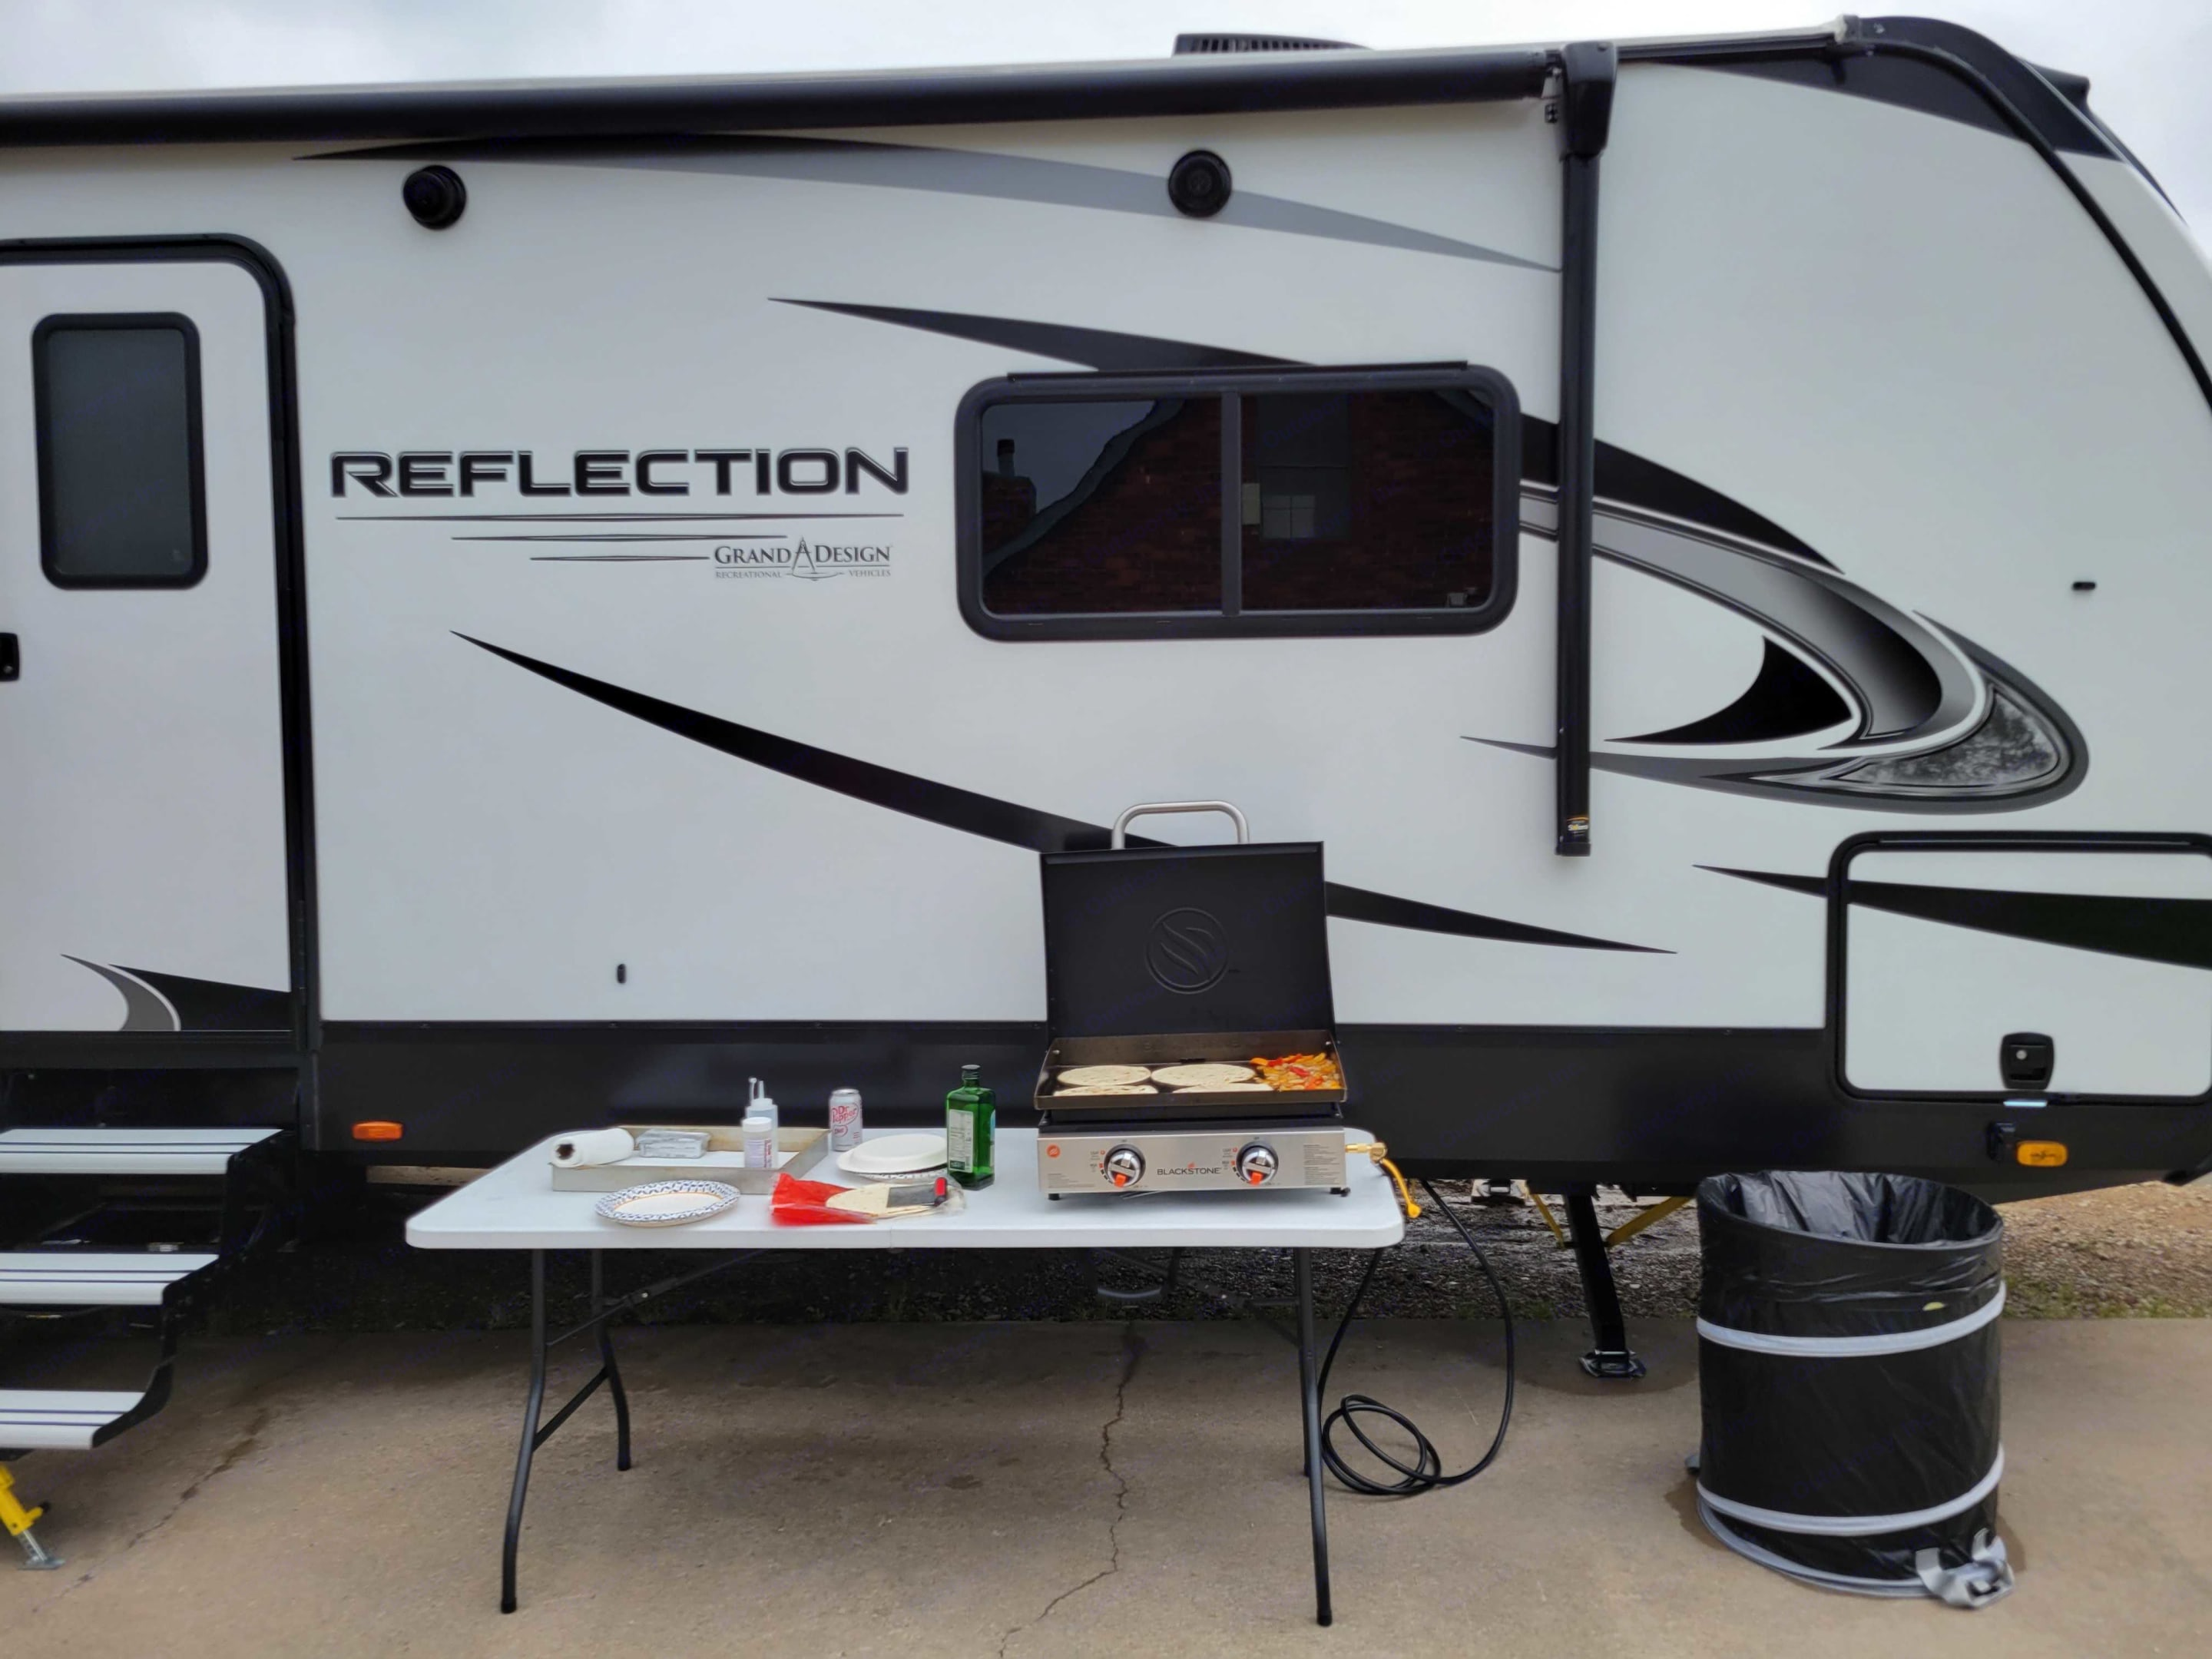 Outdoor cooking setup with griddle and folding table. Grand Design Reflection 2021